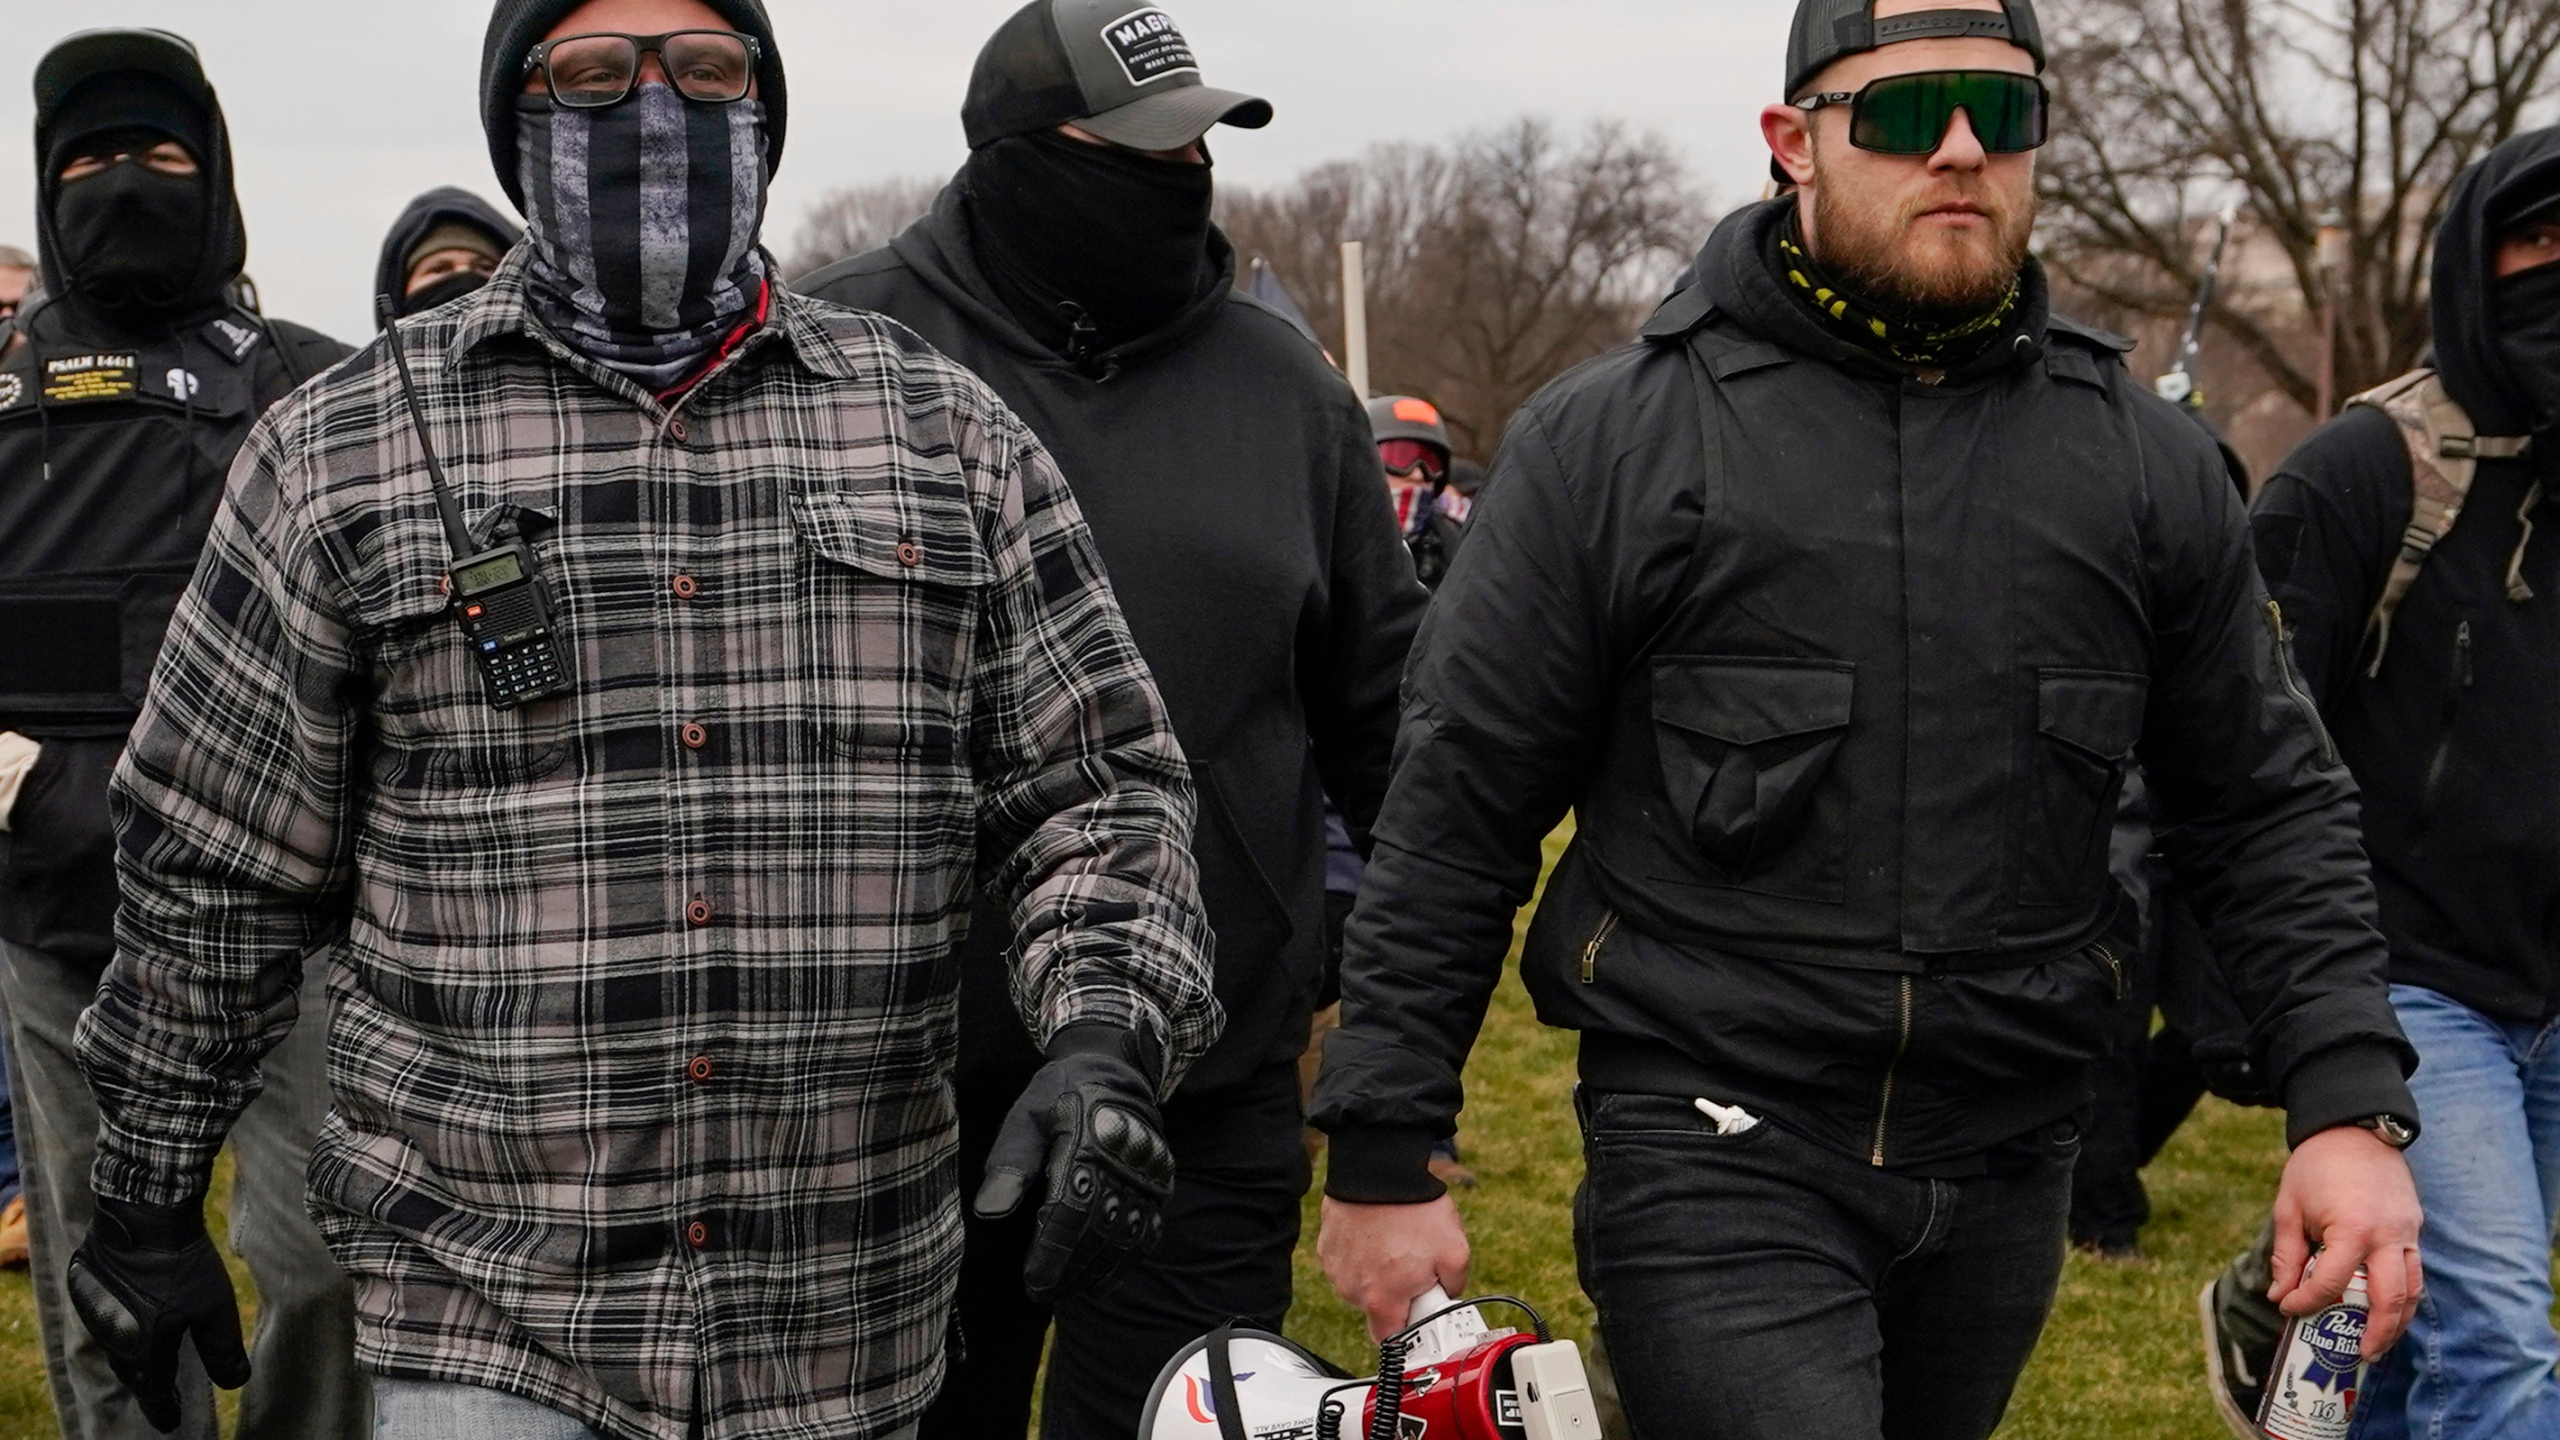 FILE - In this Jan. 6, 2021, file photo, Proud Boys members Joseph Biggs, left, and Ethan Nordean, right with megaphone, walk toward the U.S. Capitol in Washington. A federal judge has ordered Biggs and Nordean, two leaders of the far-right Proud Boys extremist group, to be arrested and jailed while awaiting trial on charges they planned and coordinated an attack on the U.S. Capitol to stop Congress from certifying President Joe Biden's electoral victory. The two had been free since their March 10 indictment, but U.S. District Judge Timothy Kelly concluded April 19, that the two men are dangerous and won't abide by release conditions. (AP Photo/Carolyn Kaster, File)